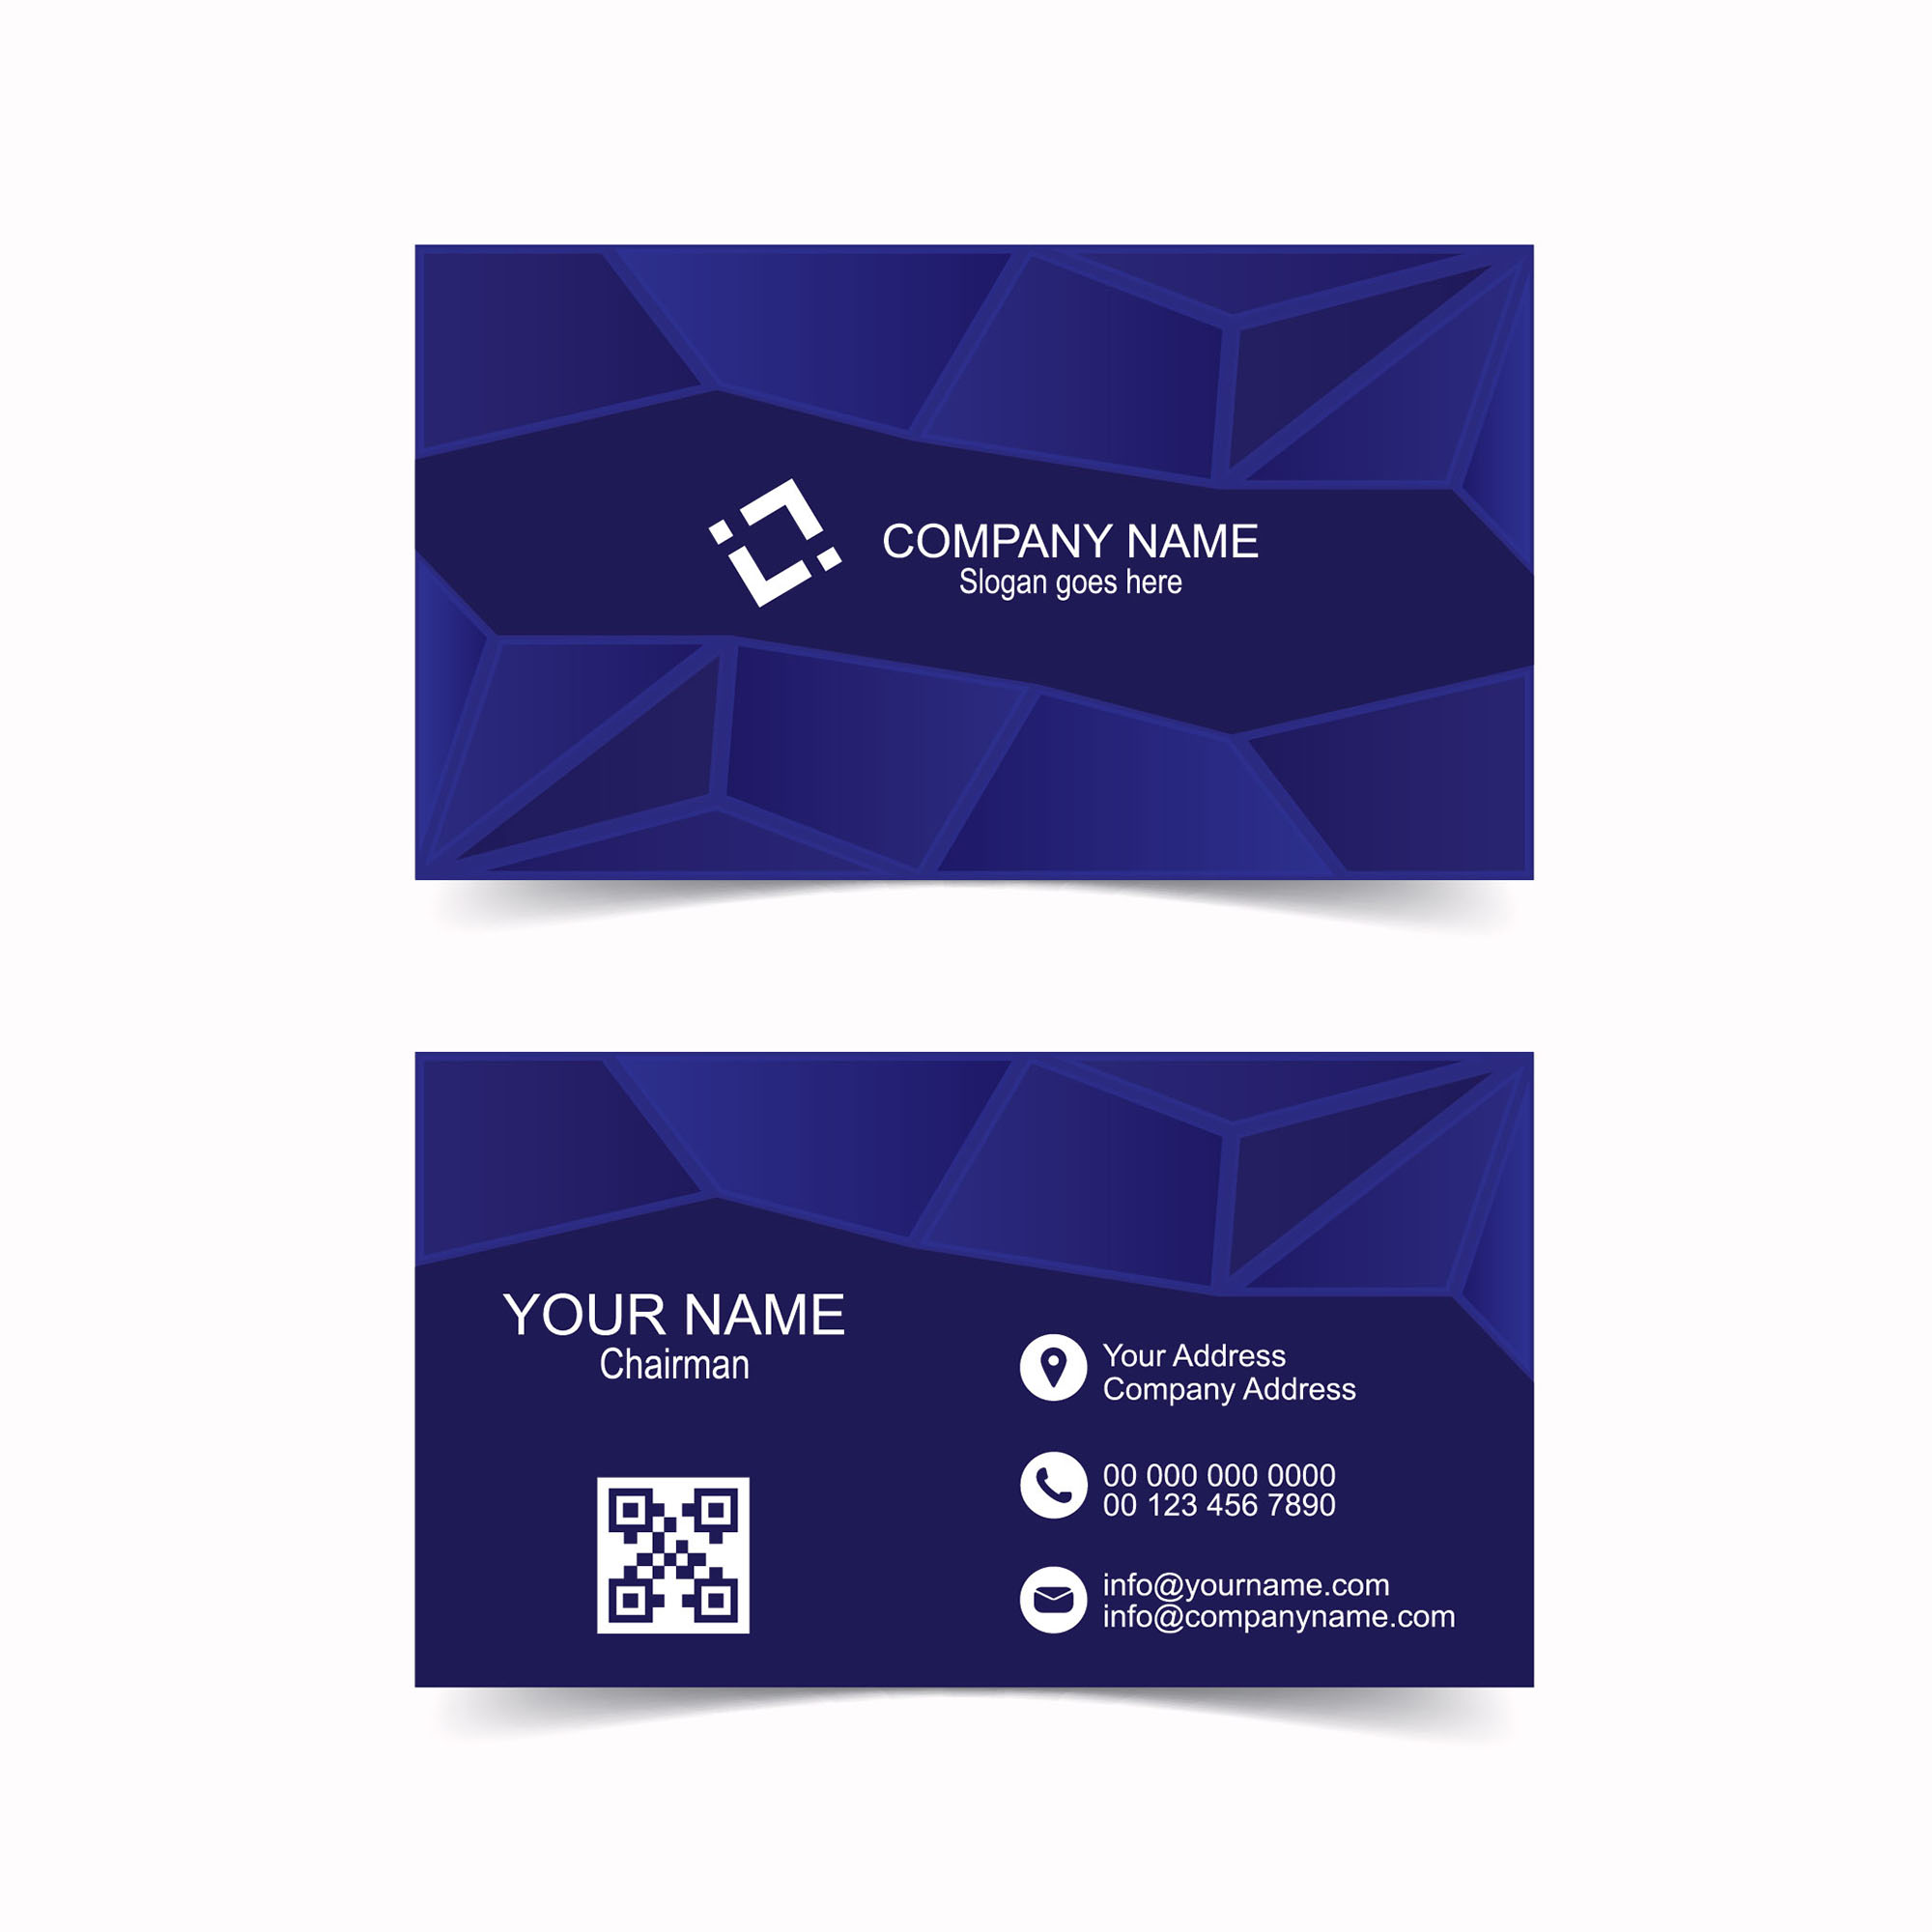 Abstract blue business card template free download wisxi business card business cards business card design business card template design templates flashek Images